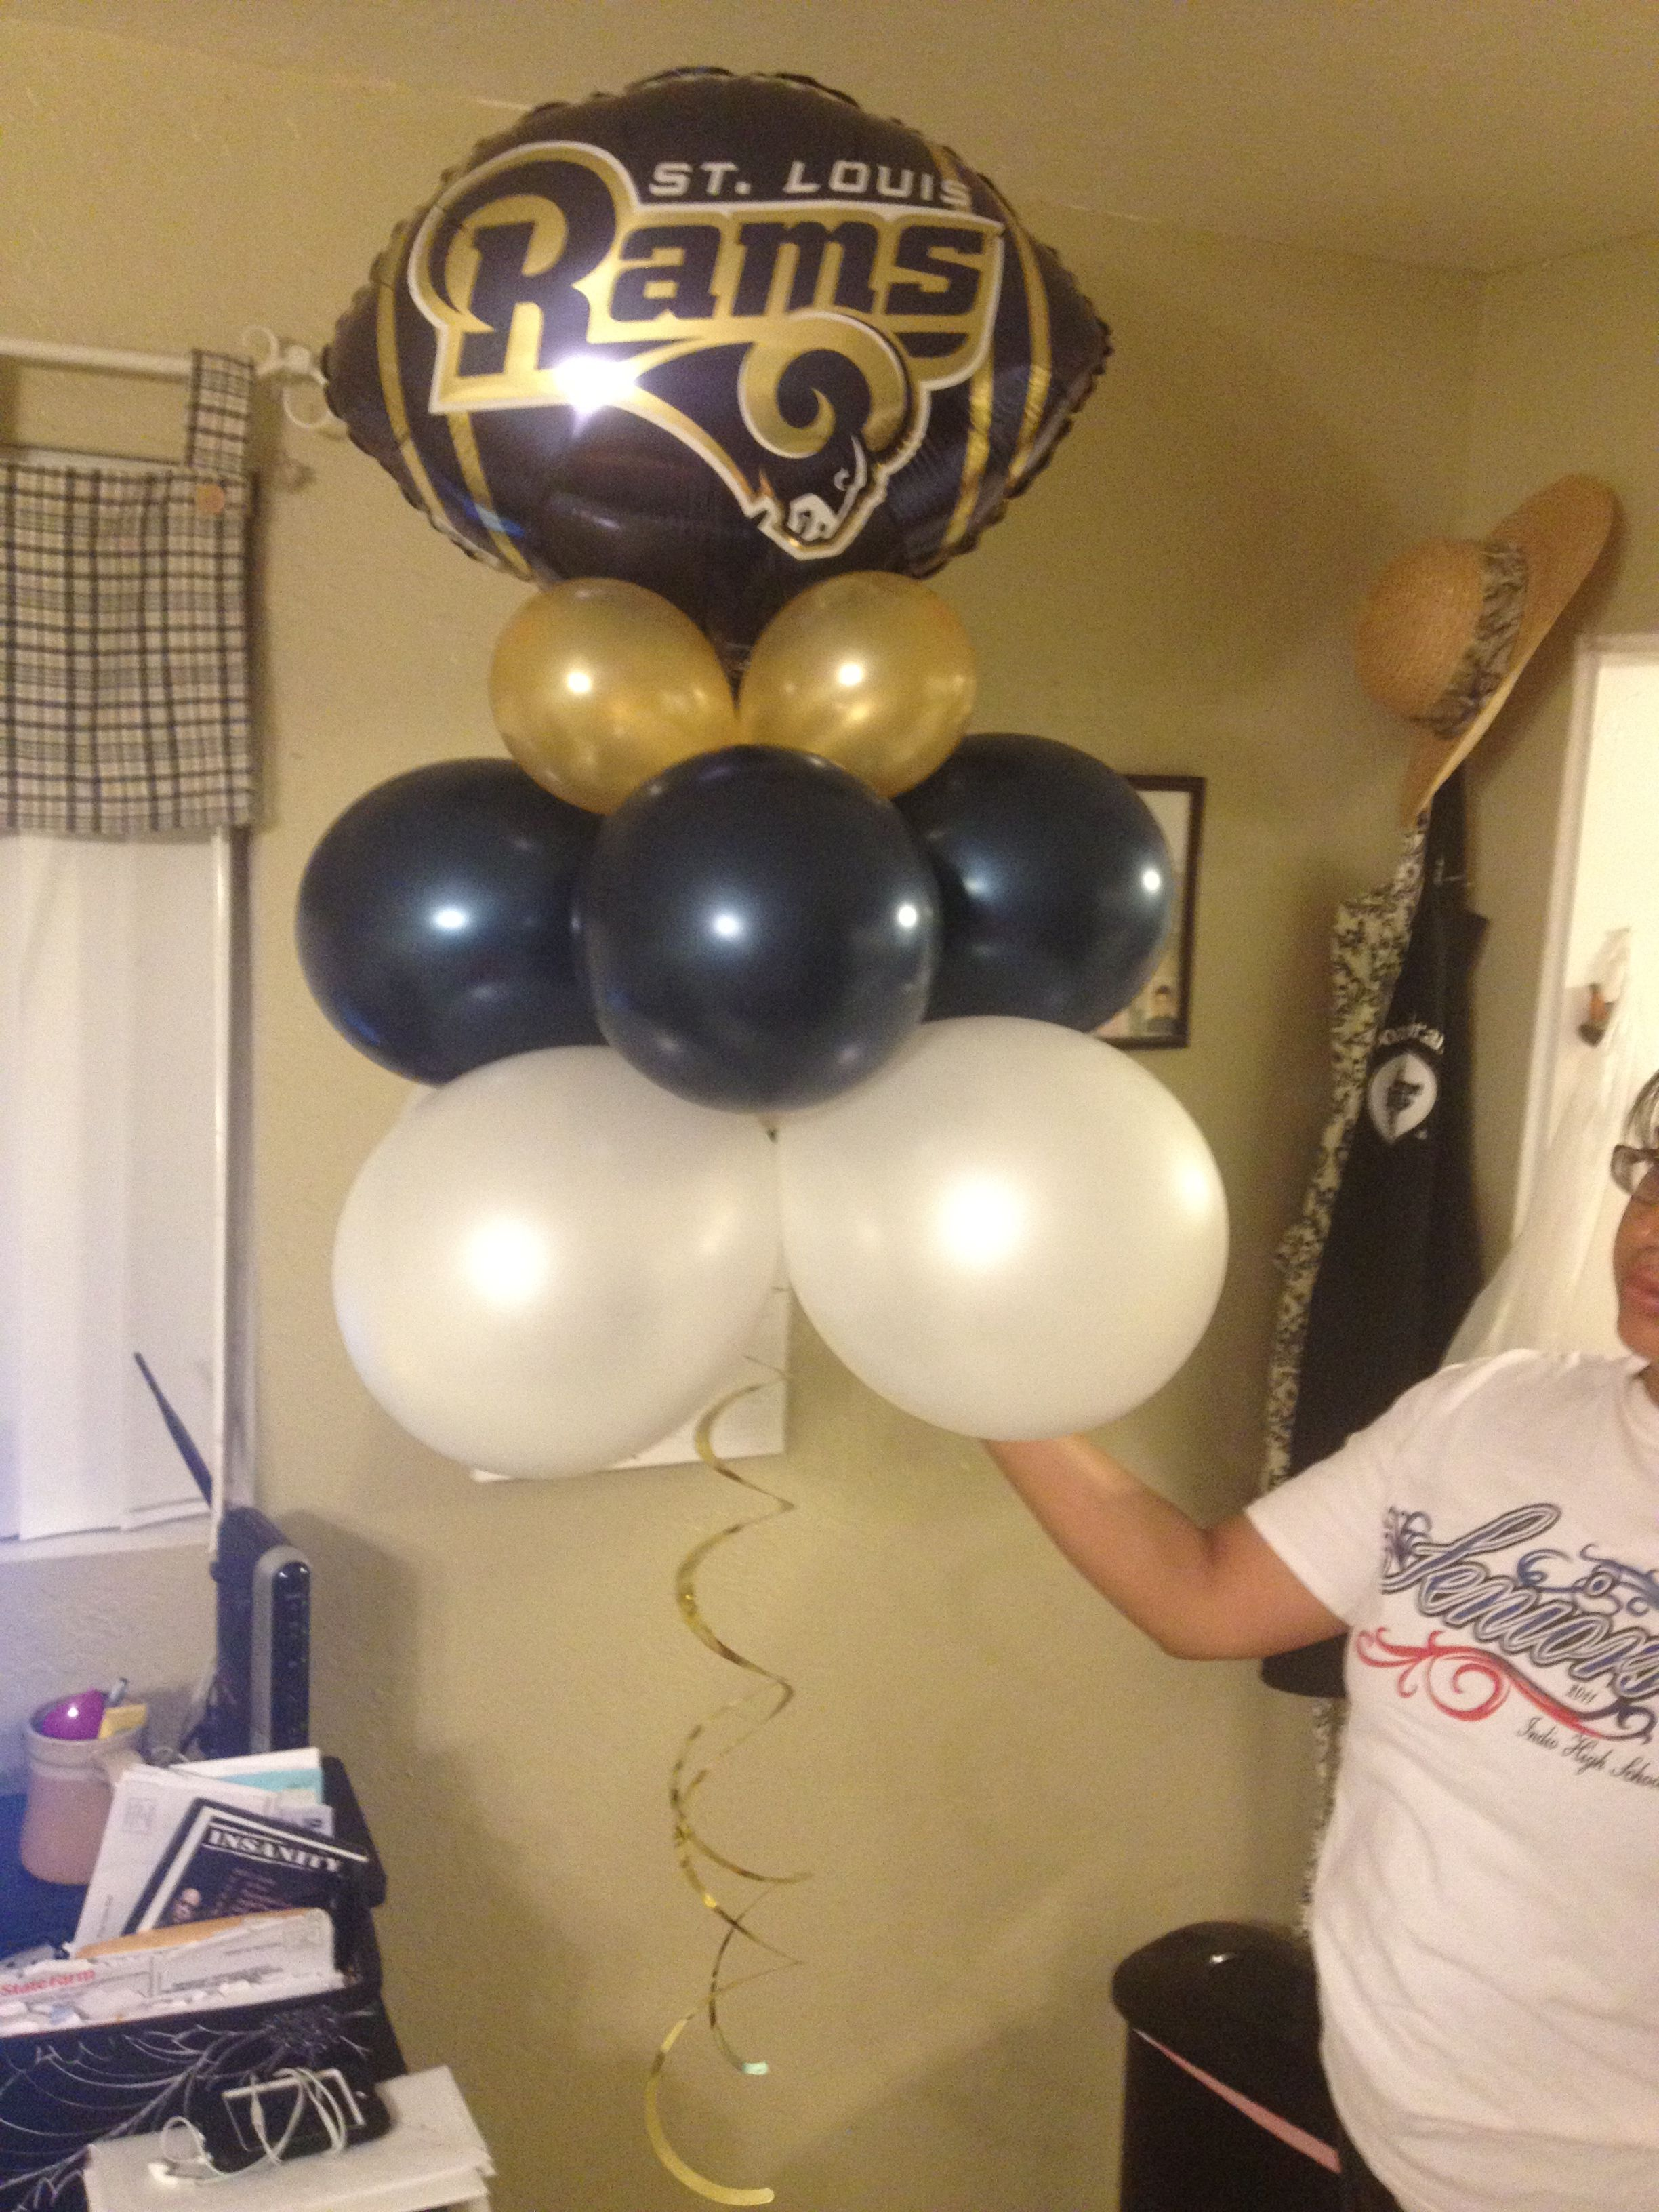 Party Decor St Louis Rams Rams Football Party Football Baby Shower Superbowl Party